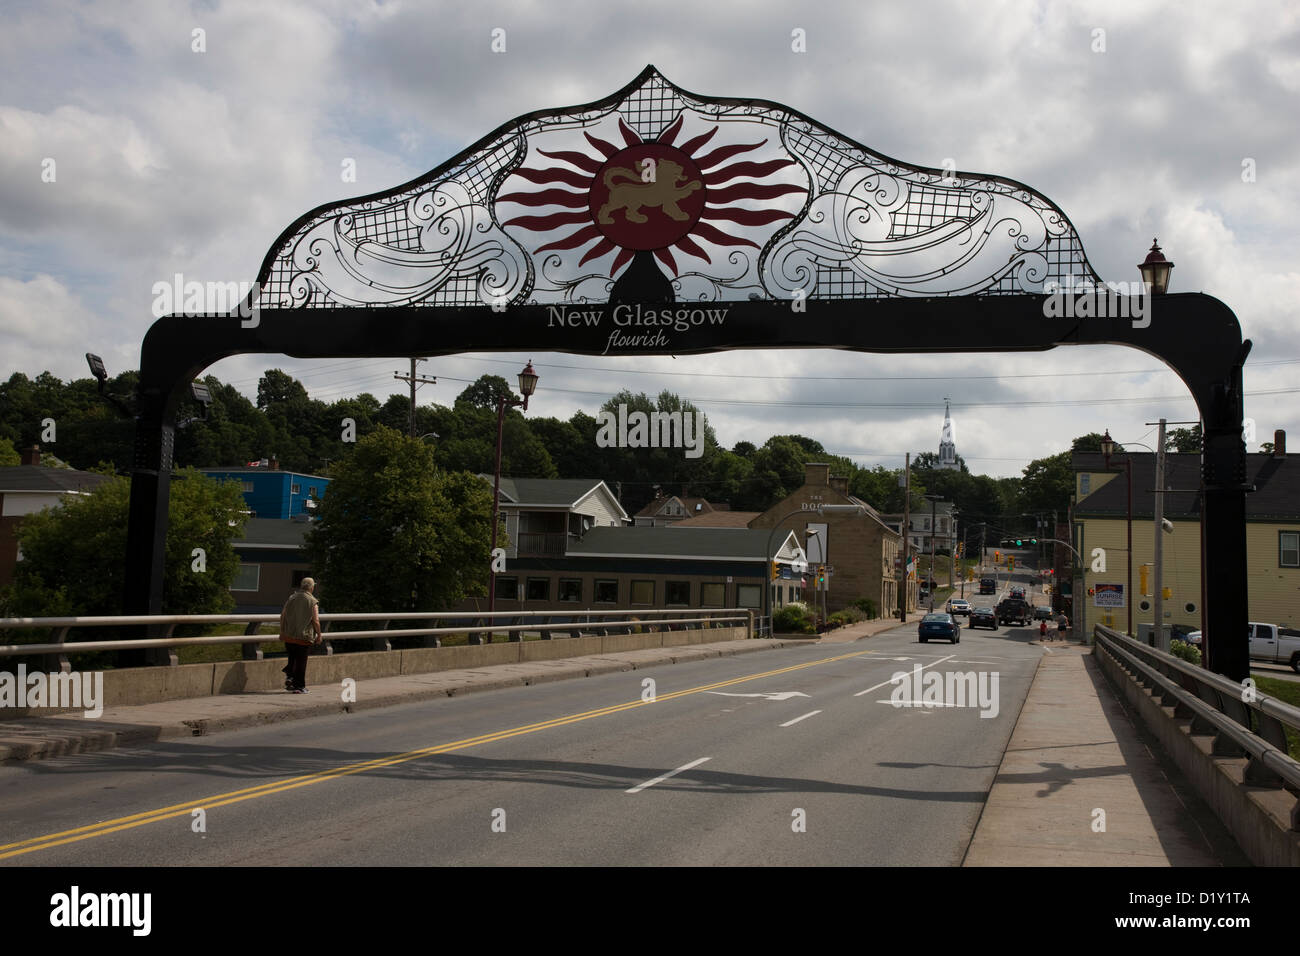 Main road over the river into New Glasgow, Nova Scotia, with gateway and motto, 'flourish' - Stock Image